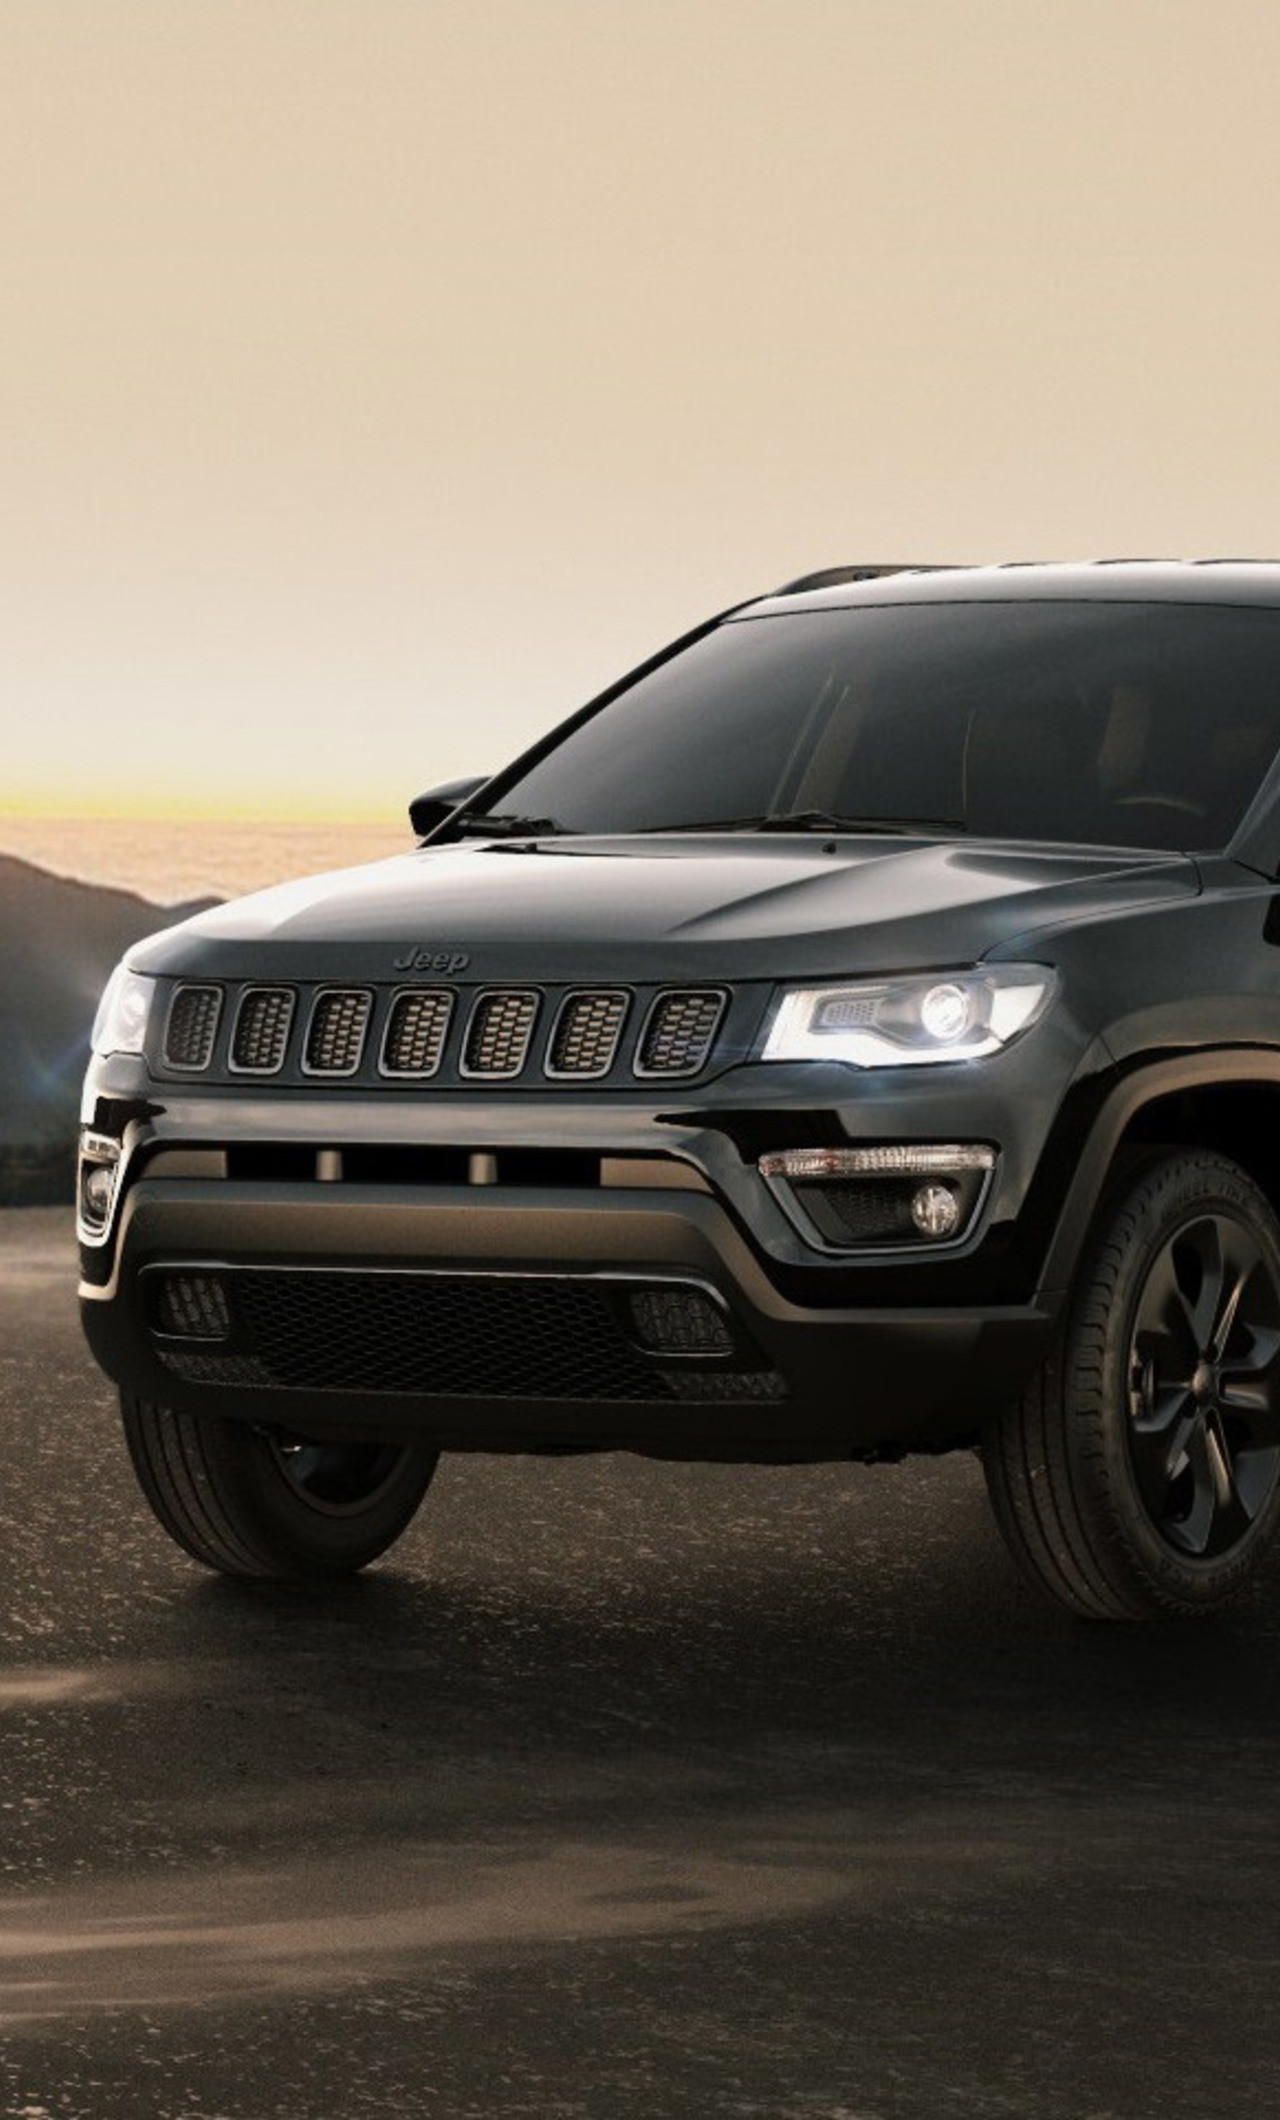 Res: 1280x2120, jeep-compass-night-eagle-2017-1m.jpg